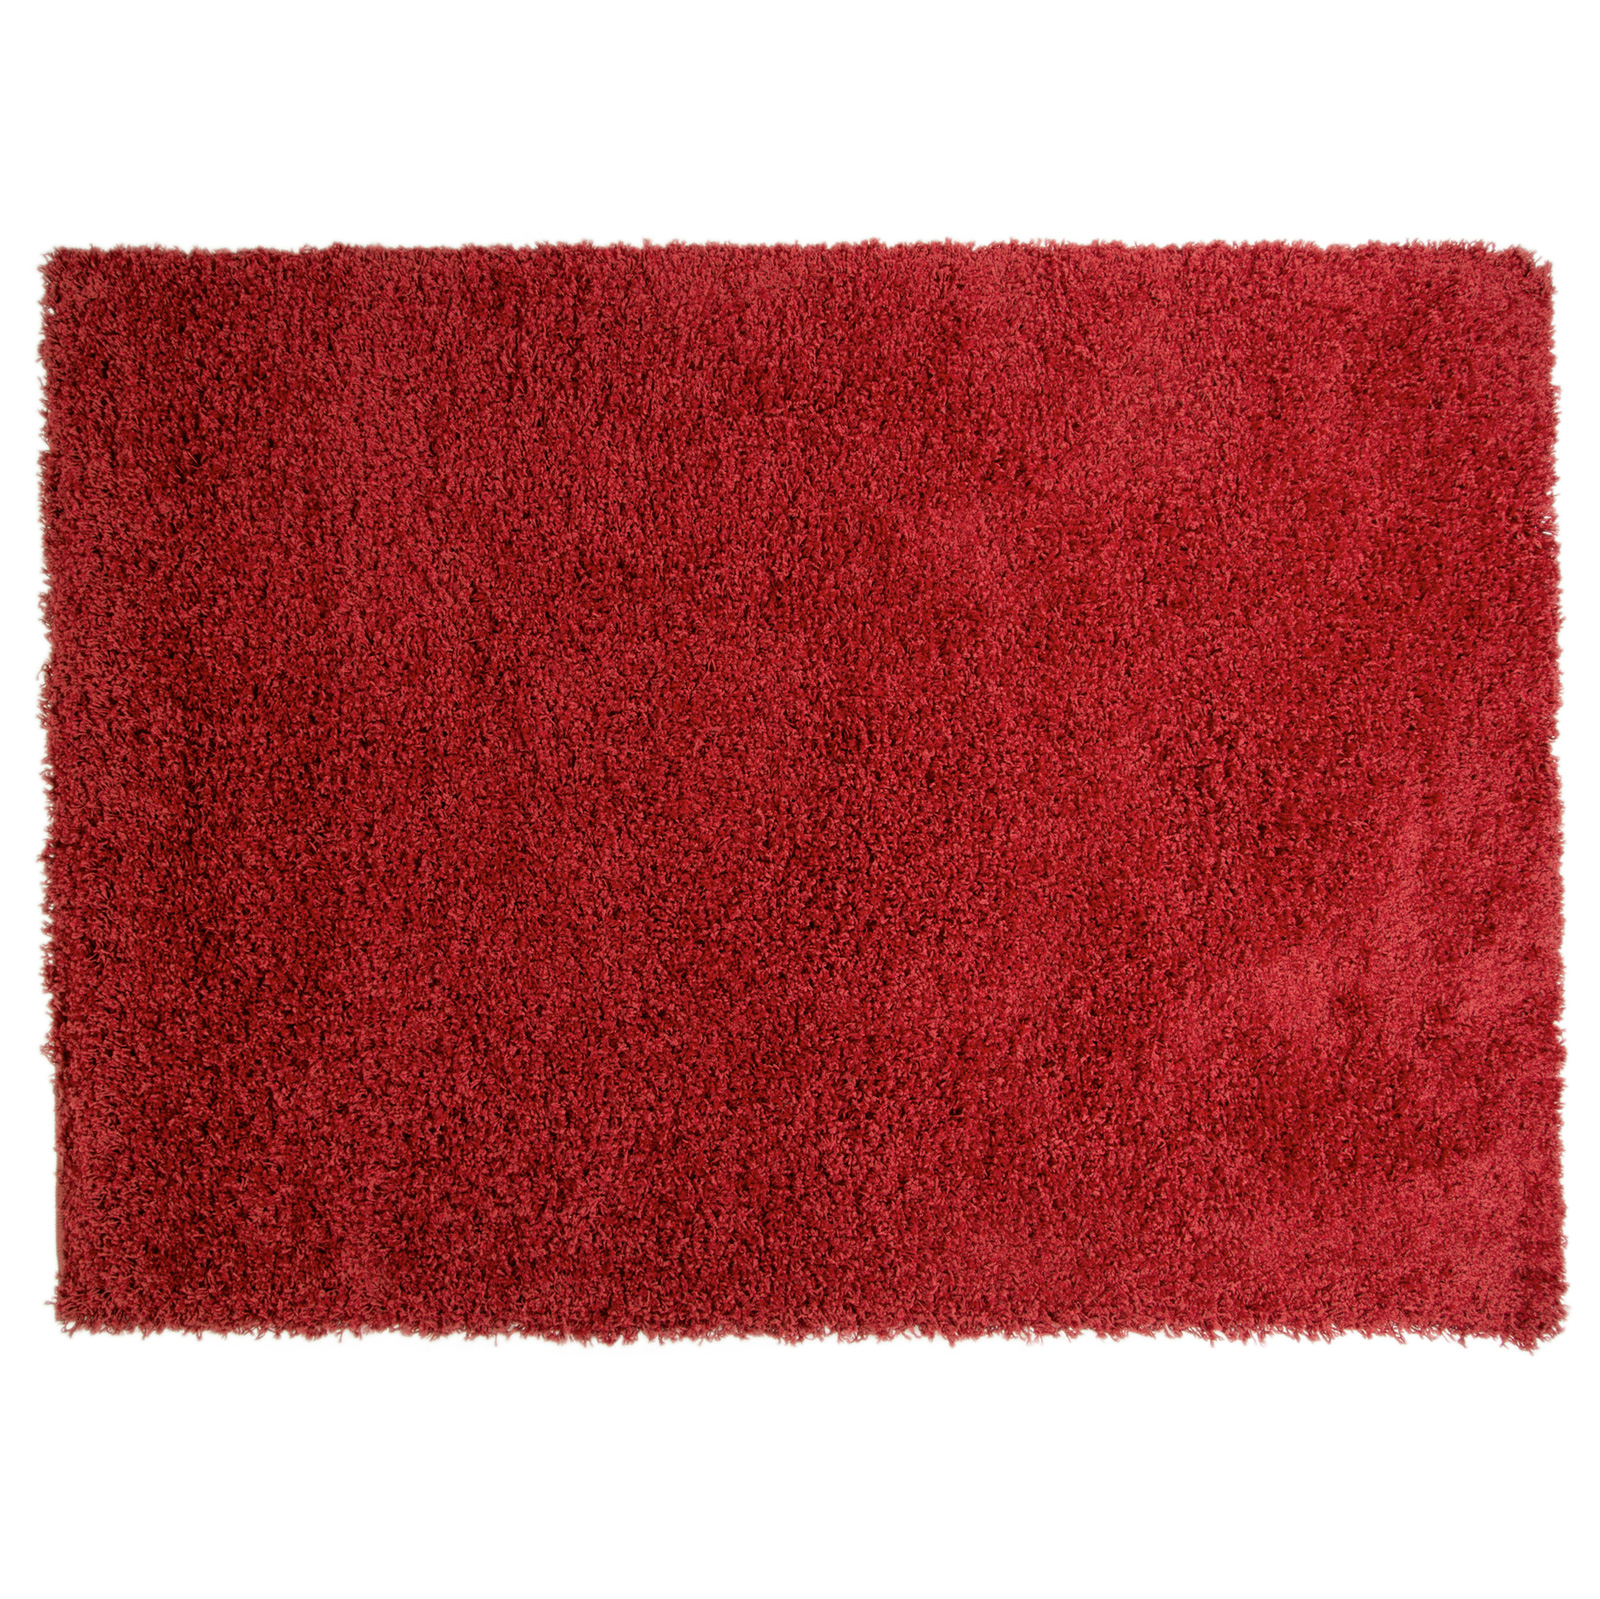 Plain shaggy carpet rug with 5cm deep pile soft warm for Warm rugs